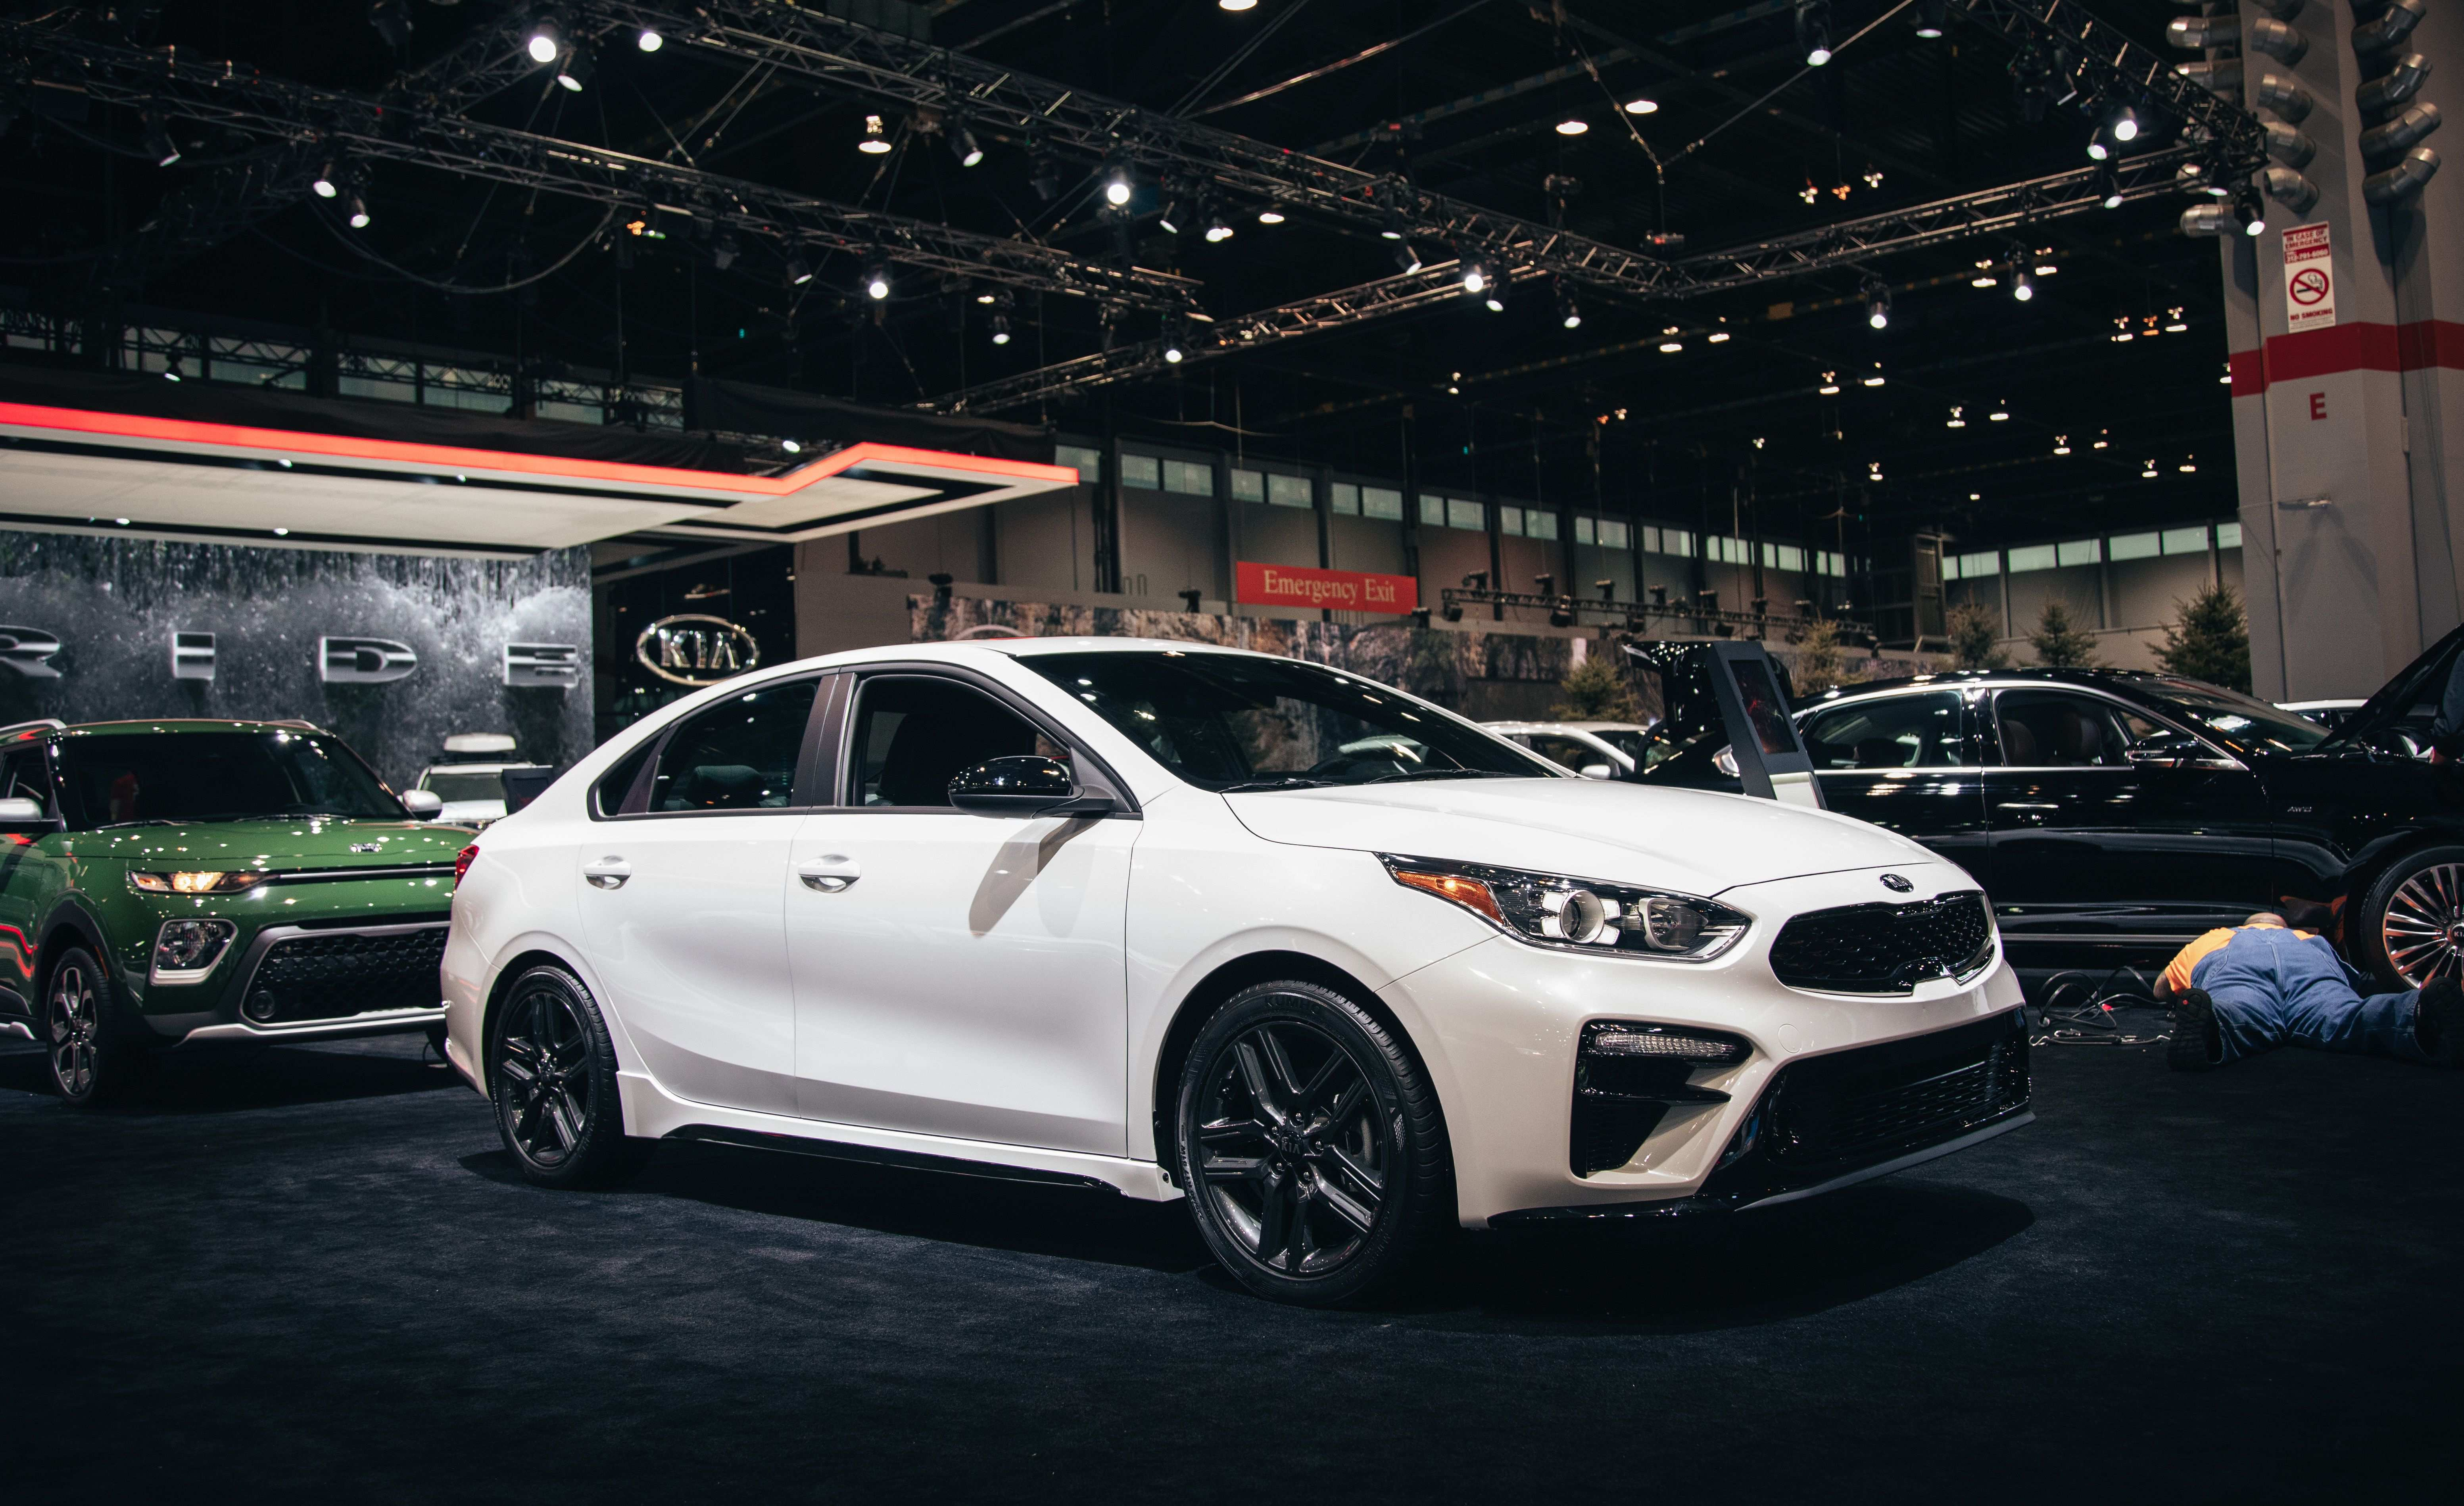 35 New 2020 Kia Forte Hatchback Photos